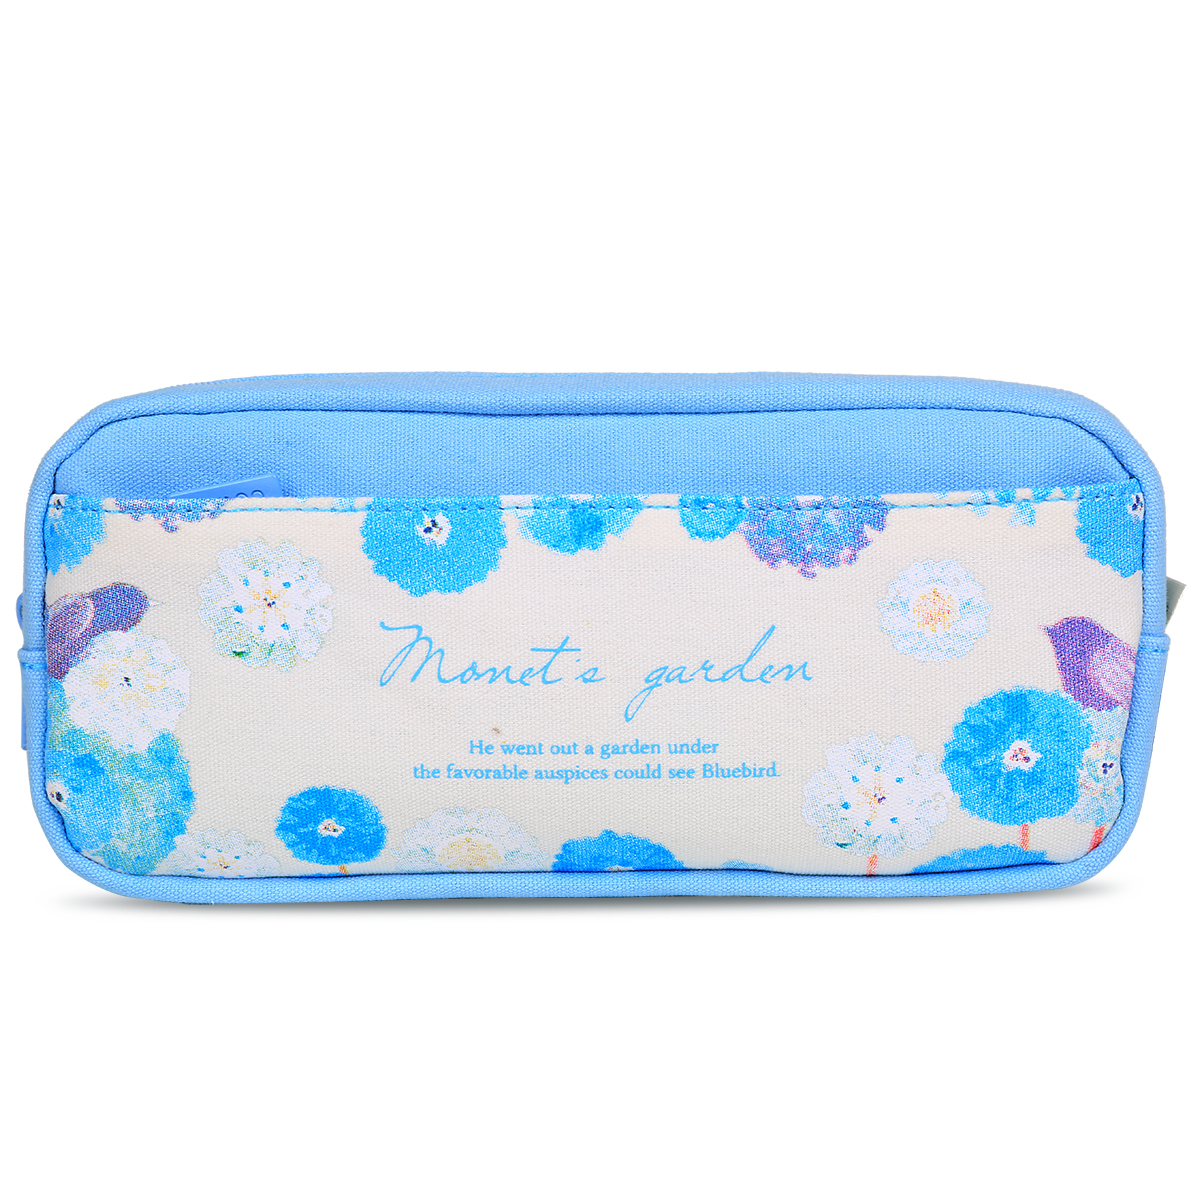 Hot Selling 1pc/lot Blue and Red Floral Pencil Case Large Capacity Canvas Zipper Pen Bags for Girls School Supplies Stationery kawaii pink sweet girl pencil case school large capacity pencil bag leather for girls pen box stationery supplies accessories